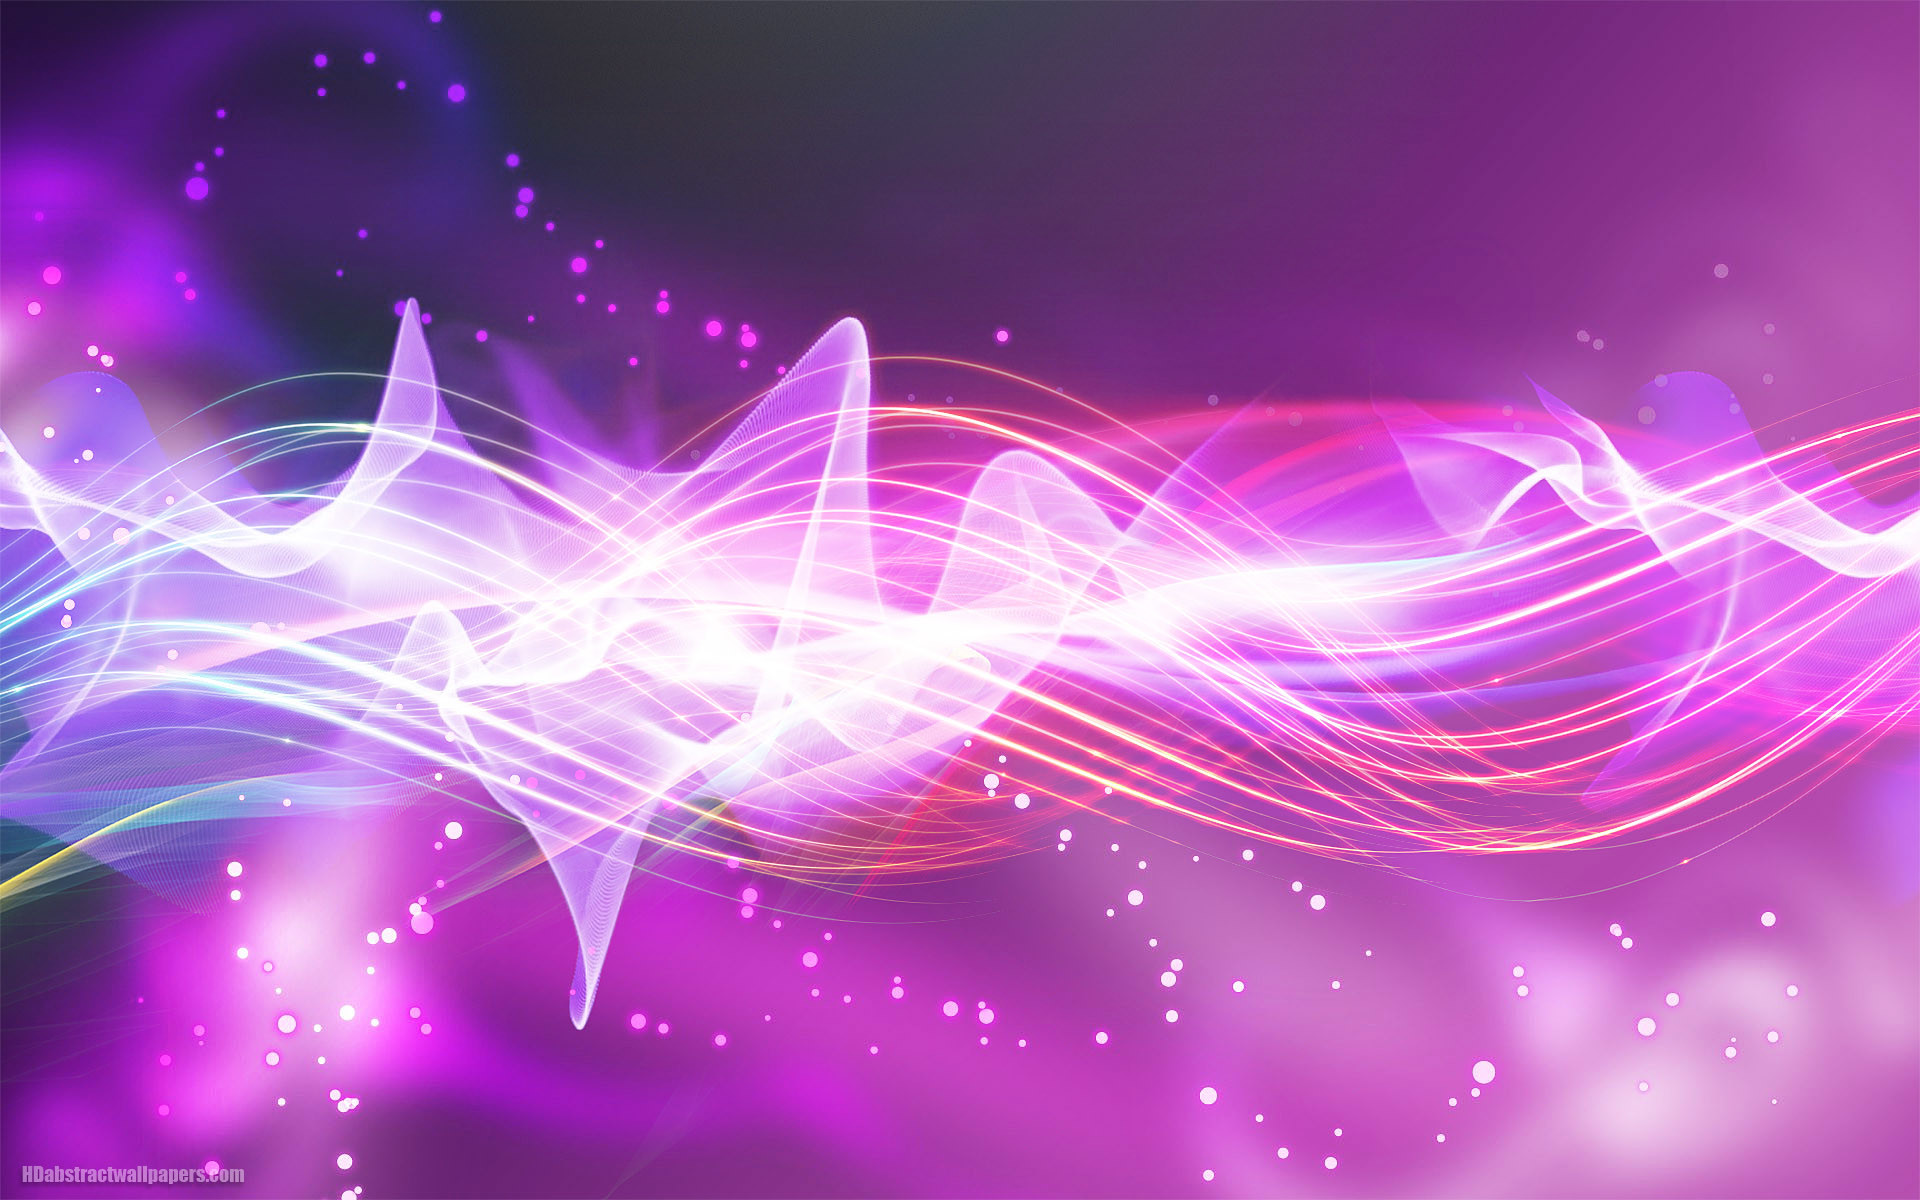 Purple and Pink Backgrounds (62+ images)